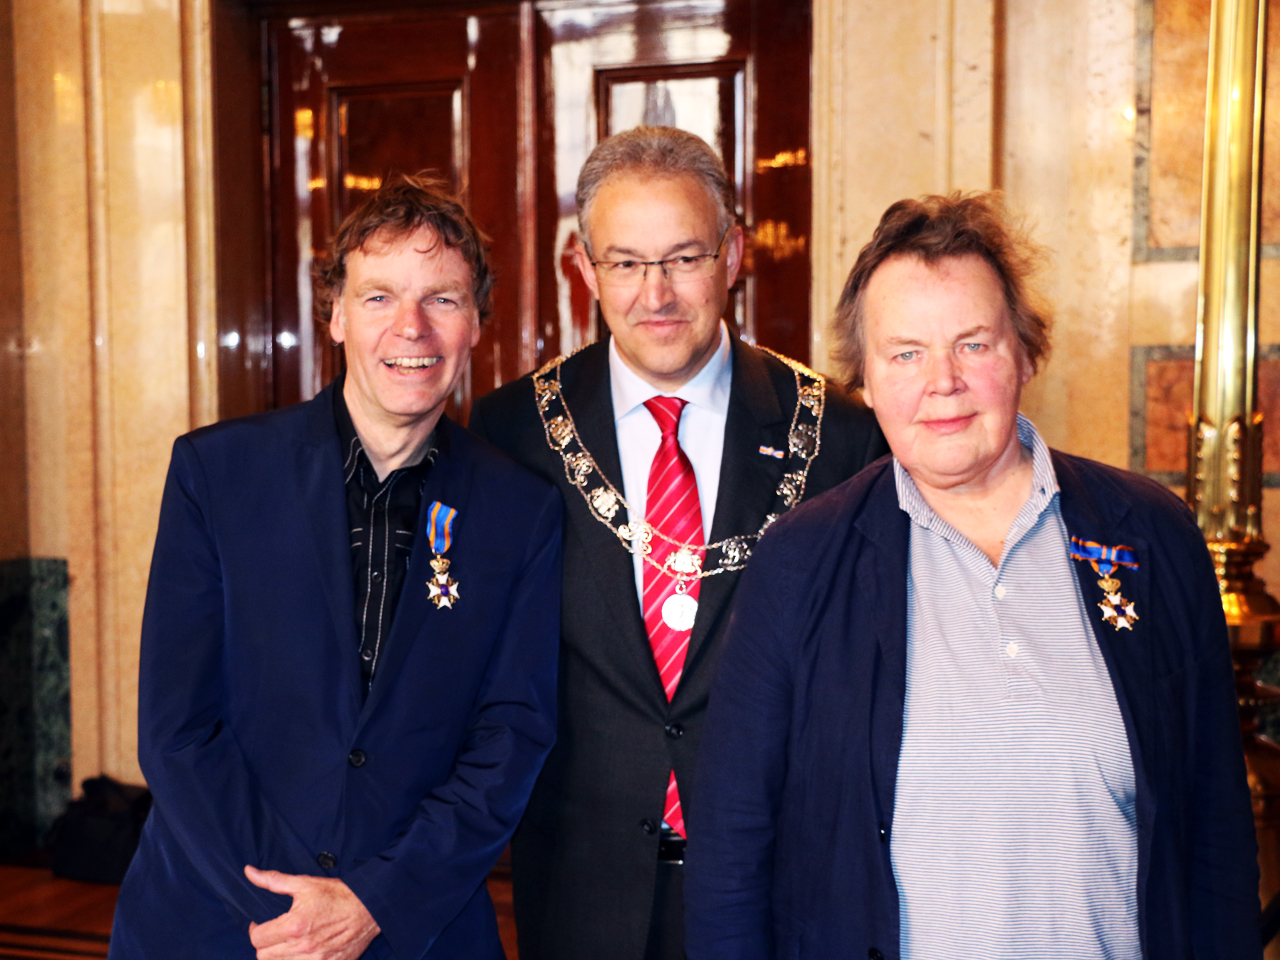 Winy Maas awarded Order of the Dutch Lion